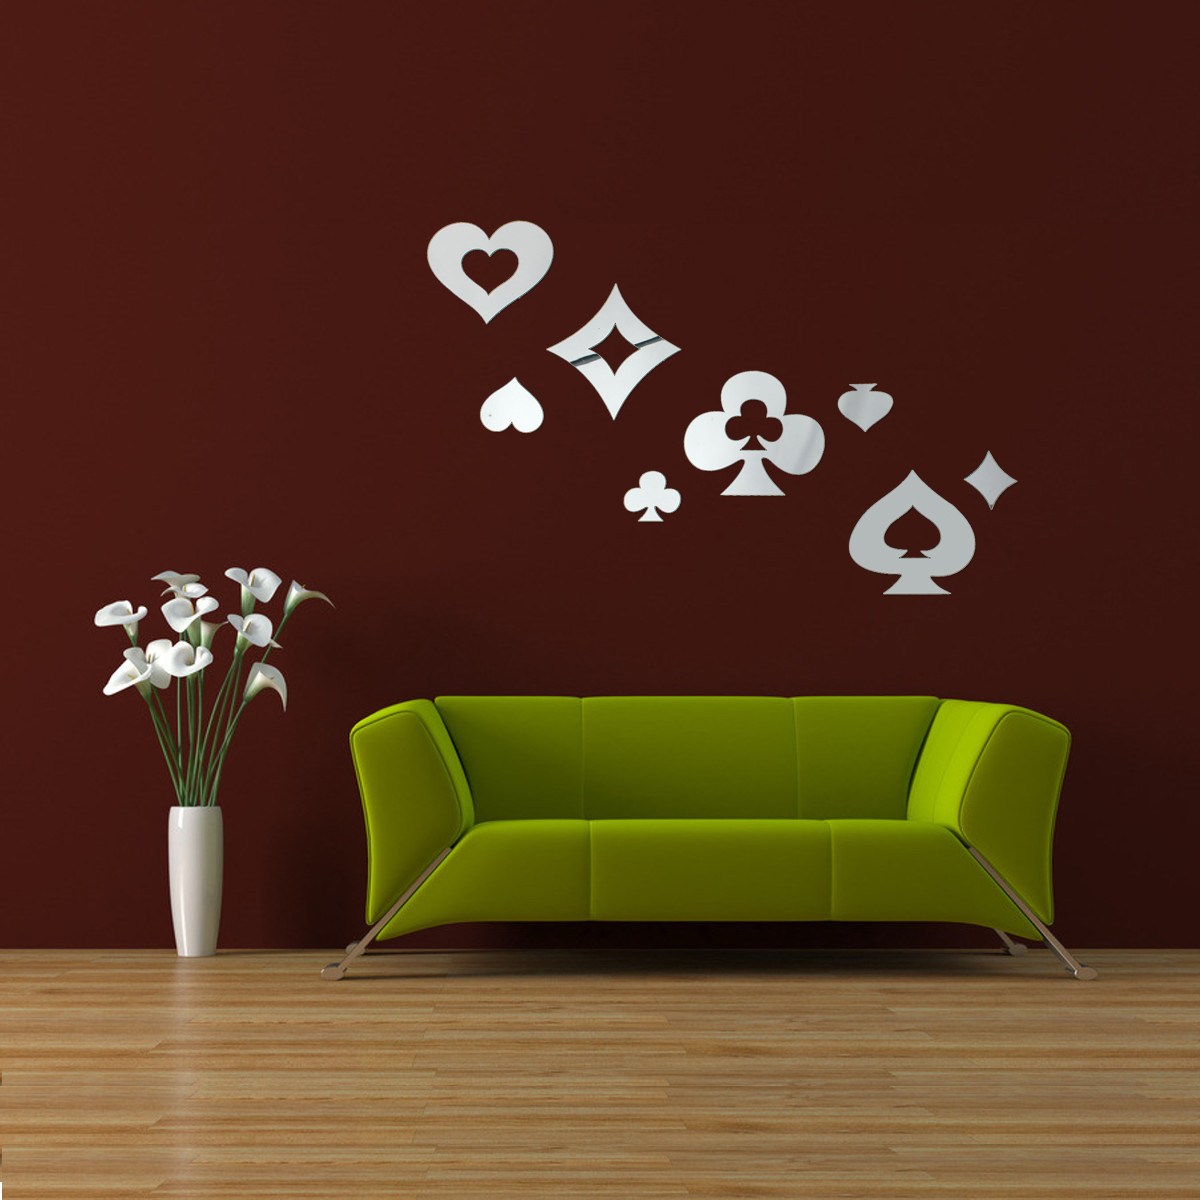 Murales pegatinas pared sticker espejo design diy pared de for Pegatinas murales pared